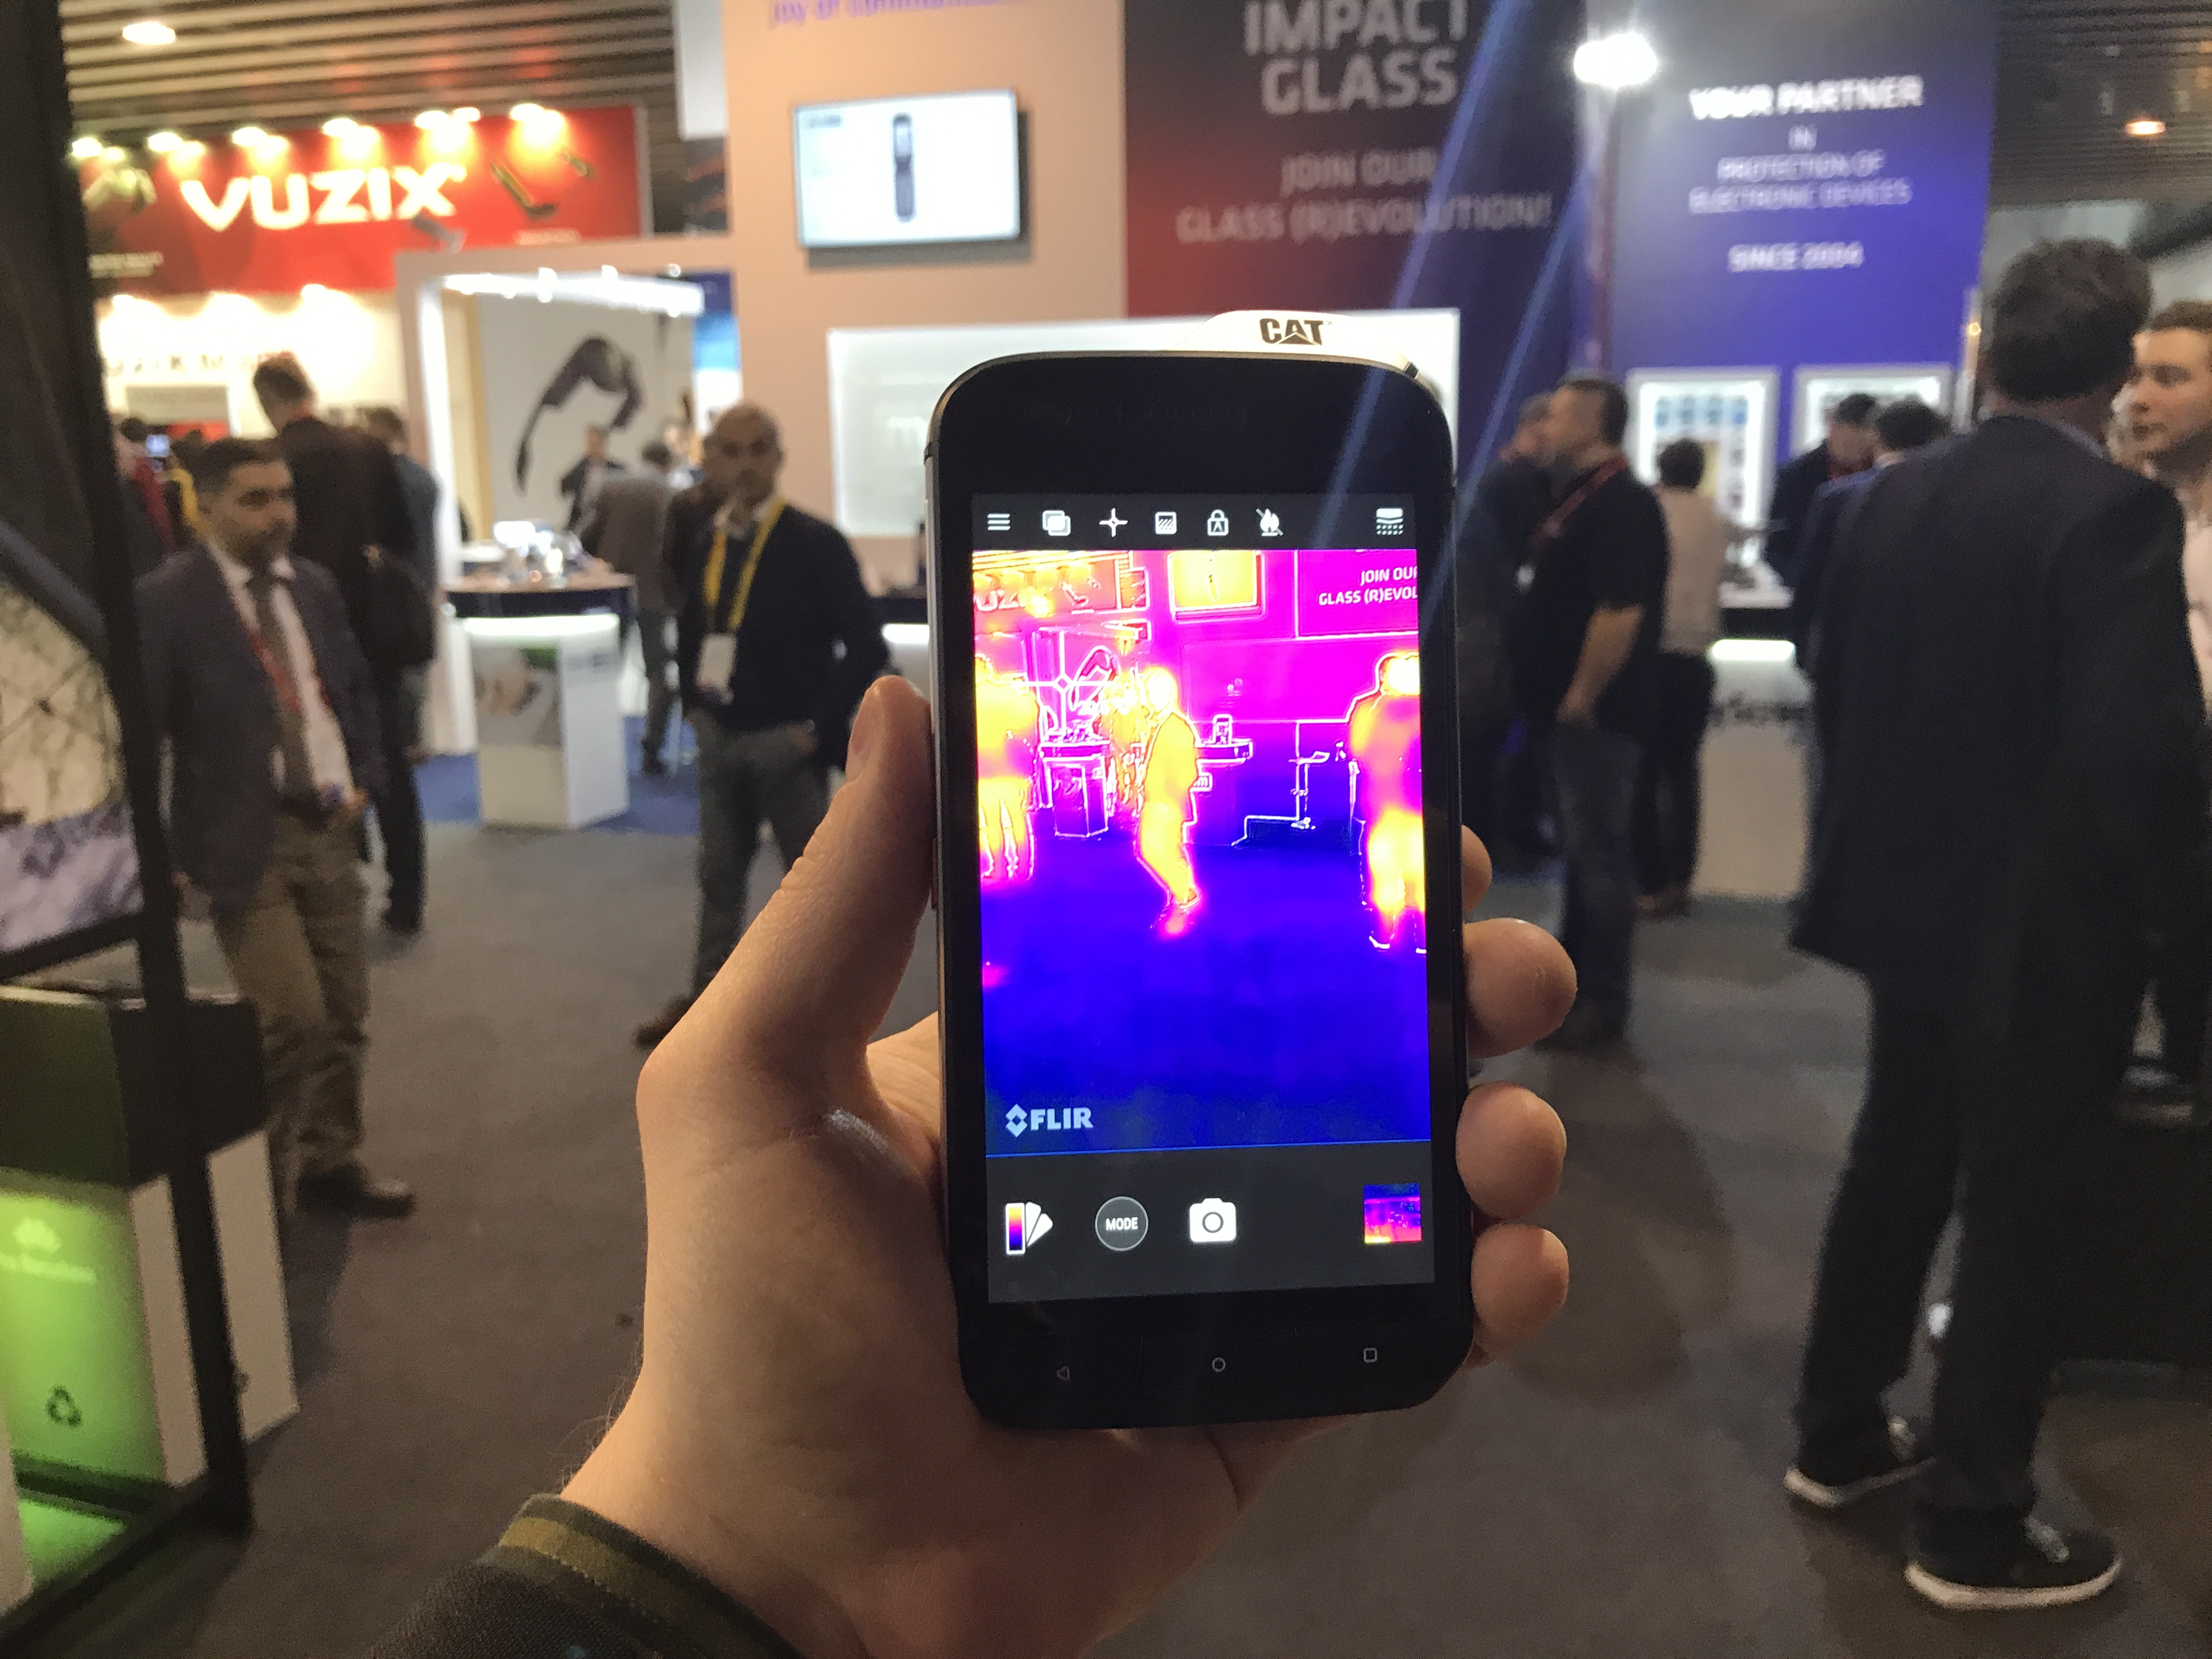 Cat S61 Smartphone Hands-On: First Impressions